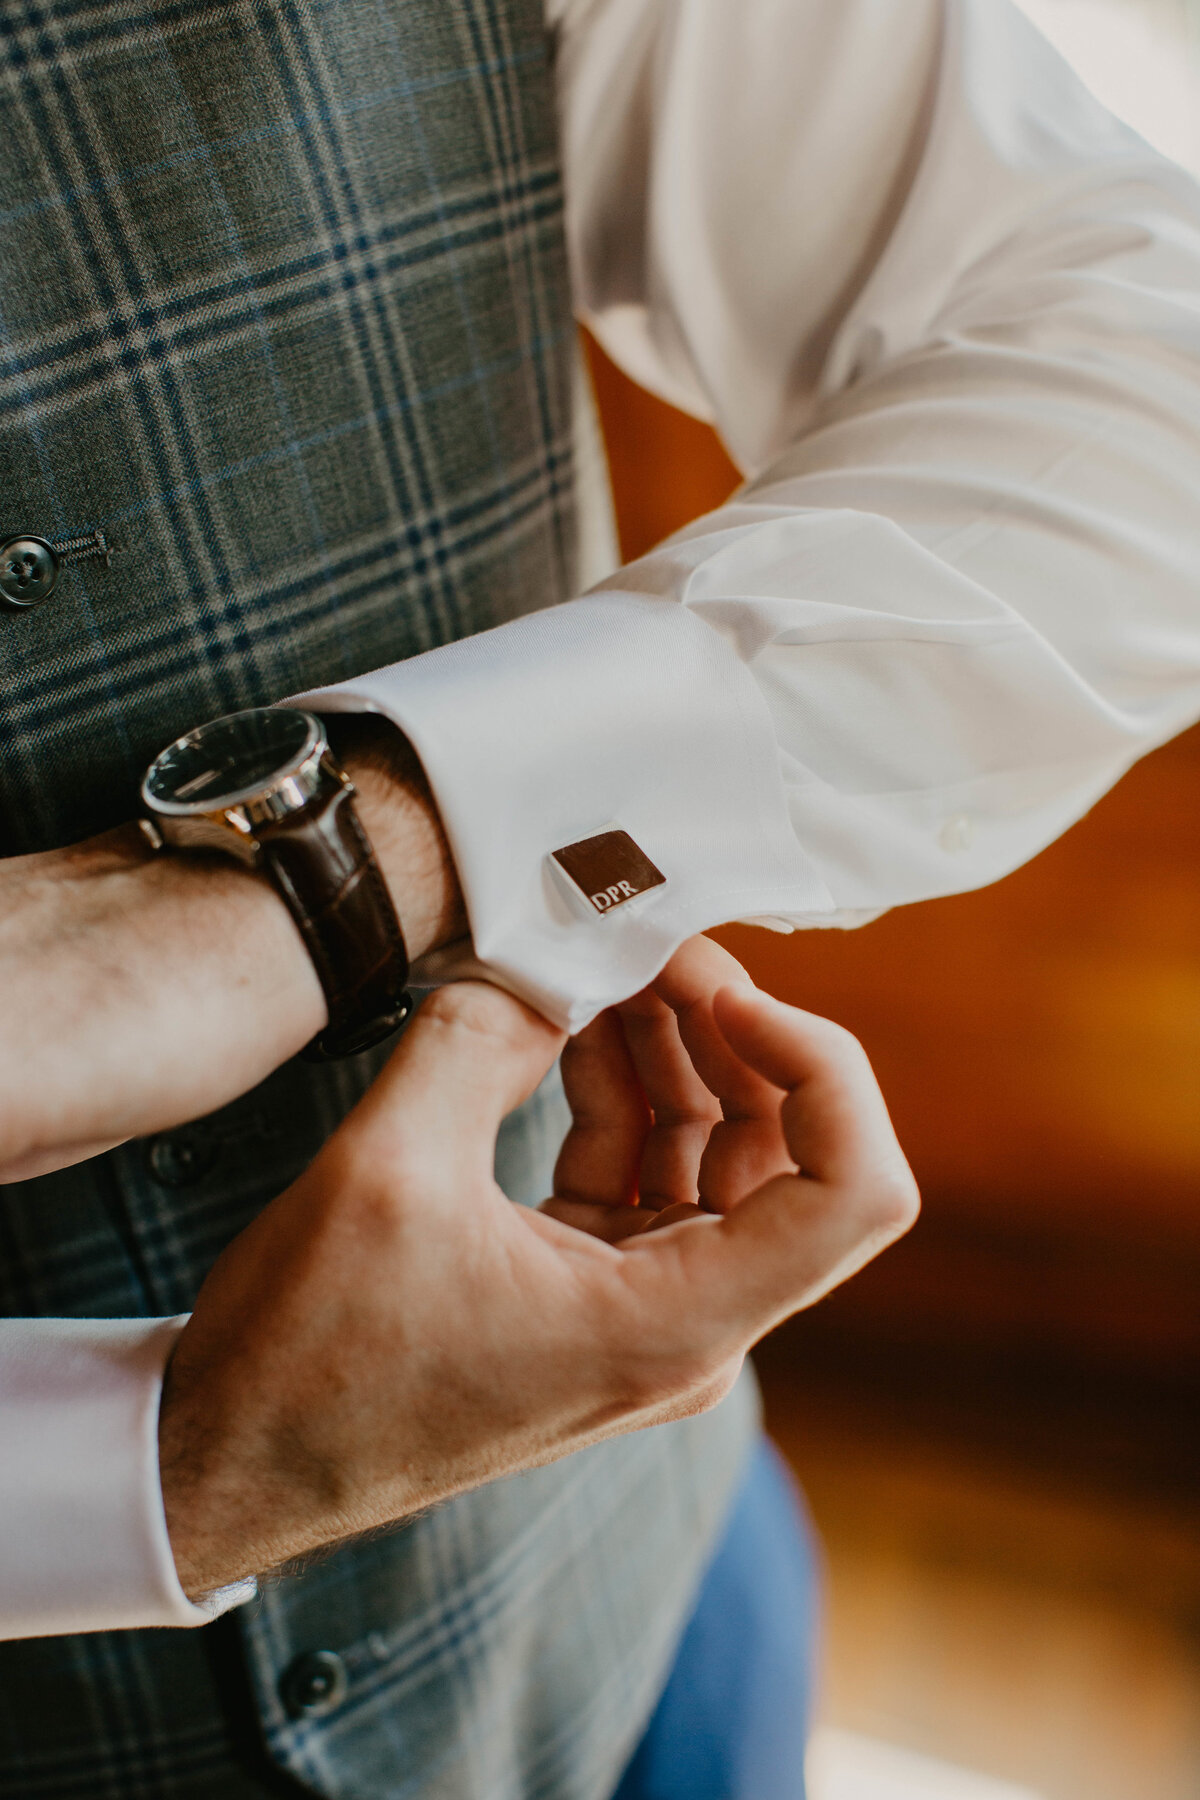 A picture of a closeup view of the groom adjusting the cuff link on his dress shirt as he dresses for his wedding ceremony by Garry & Stacy Photography Co - St Petersburg Florida wedding photography and videography